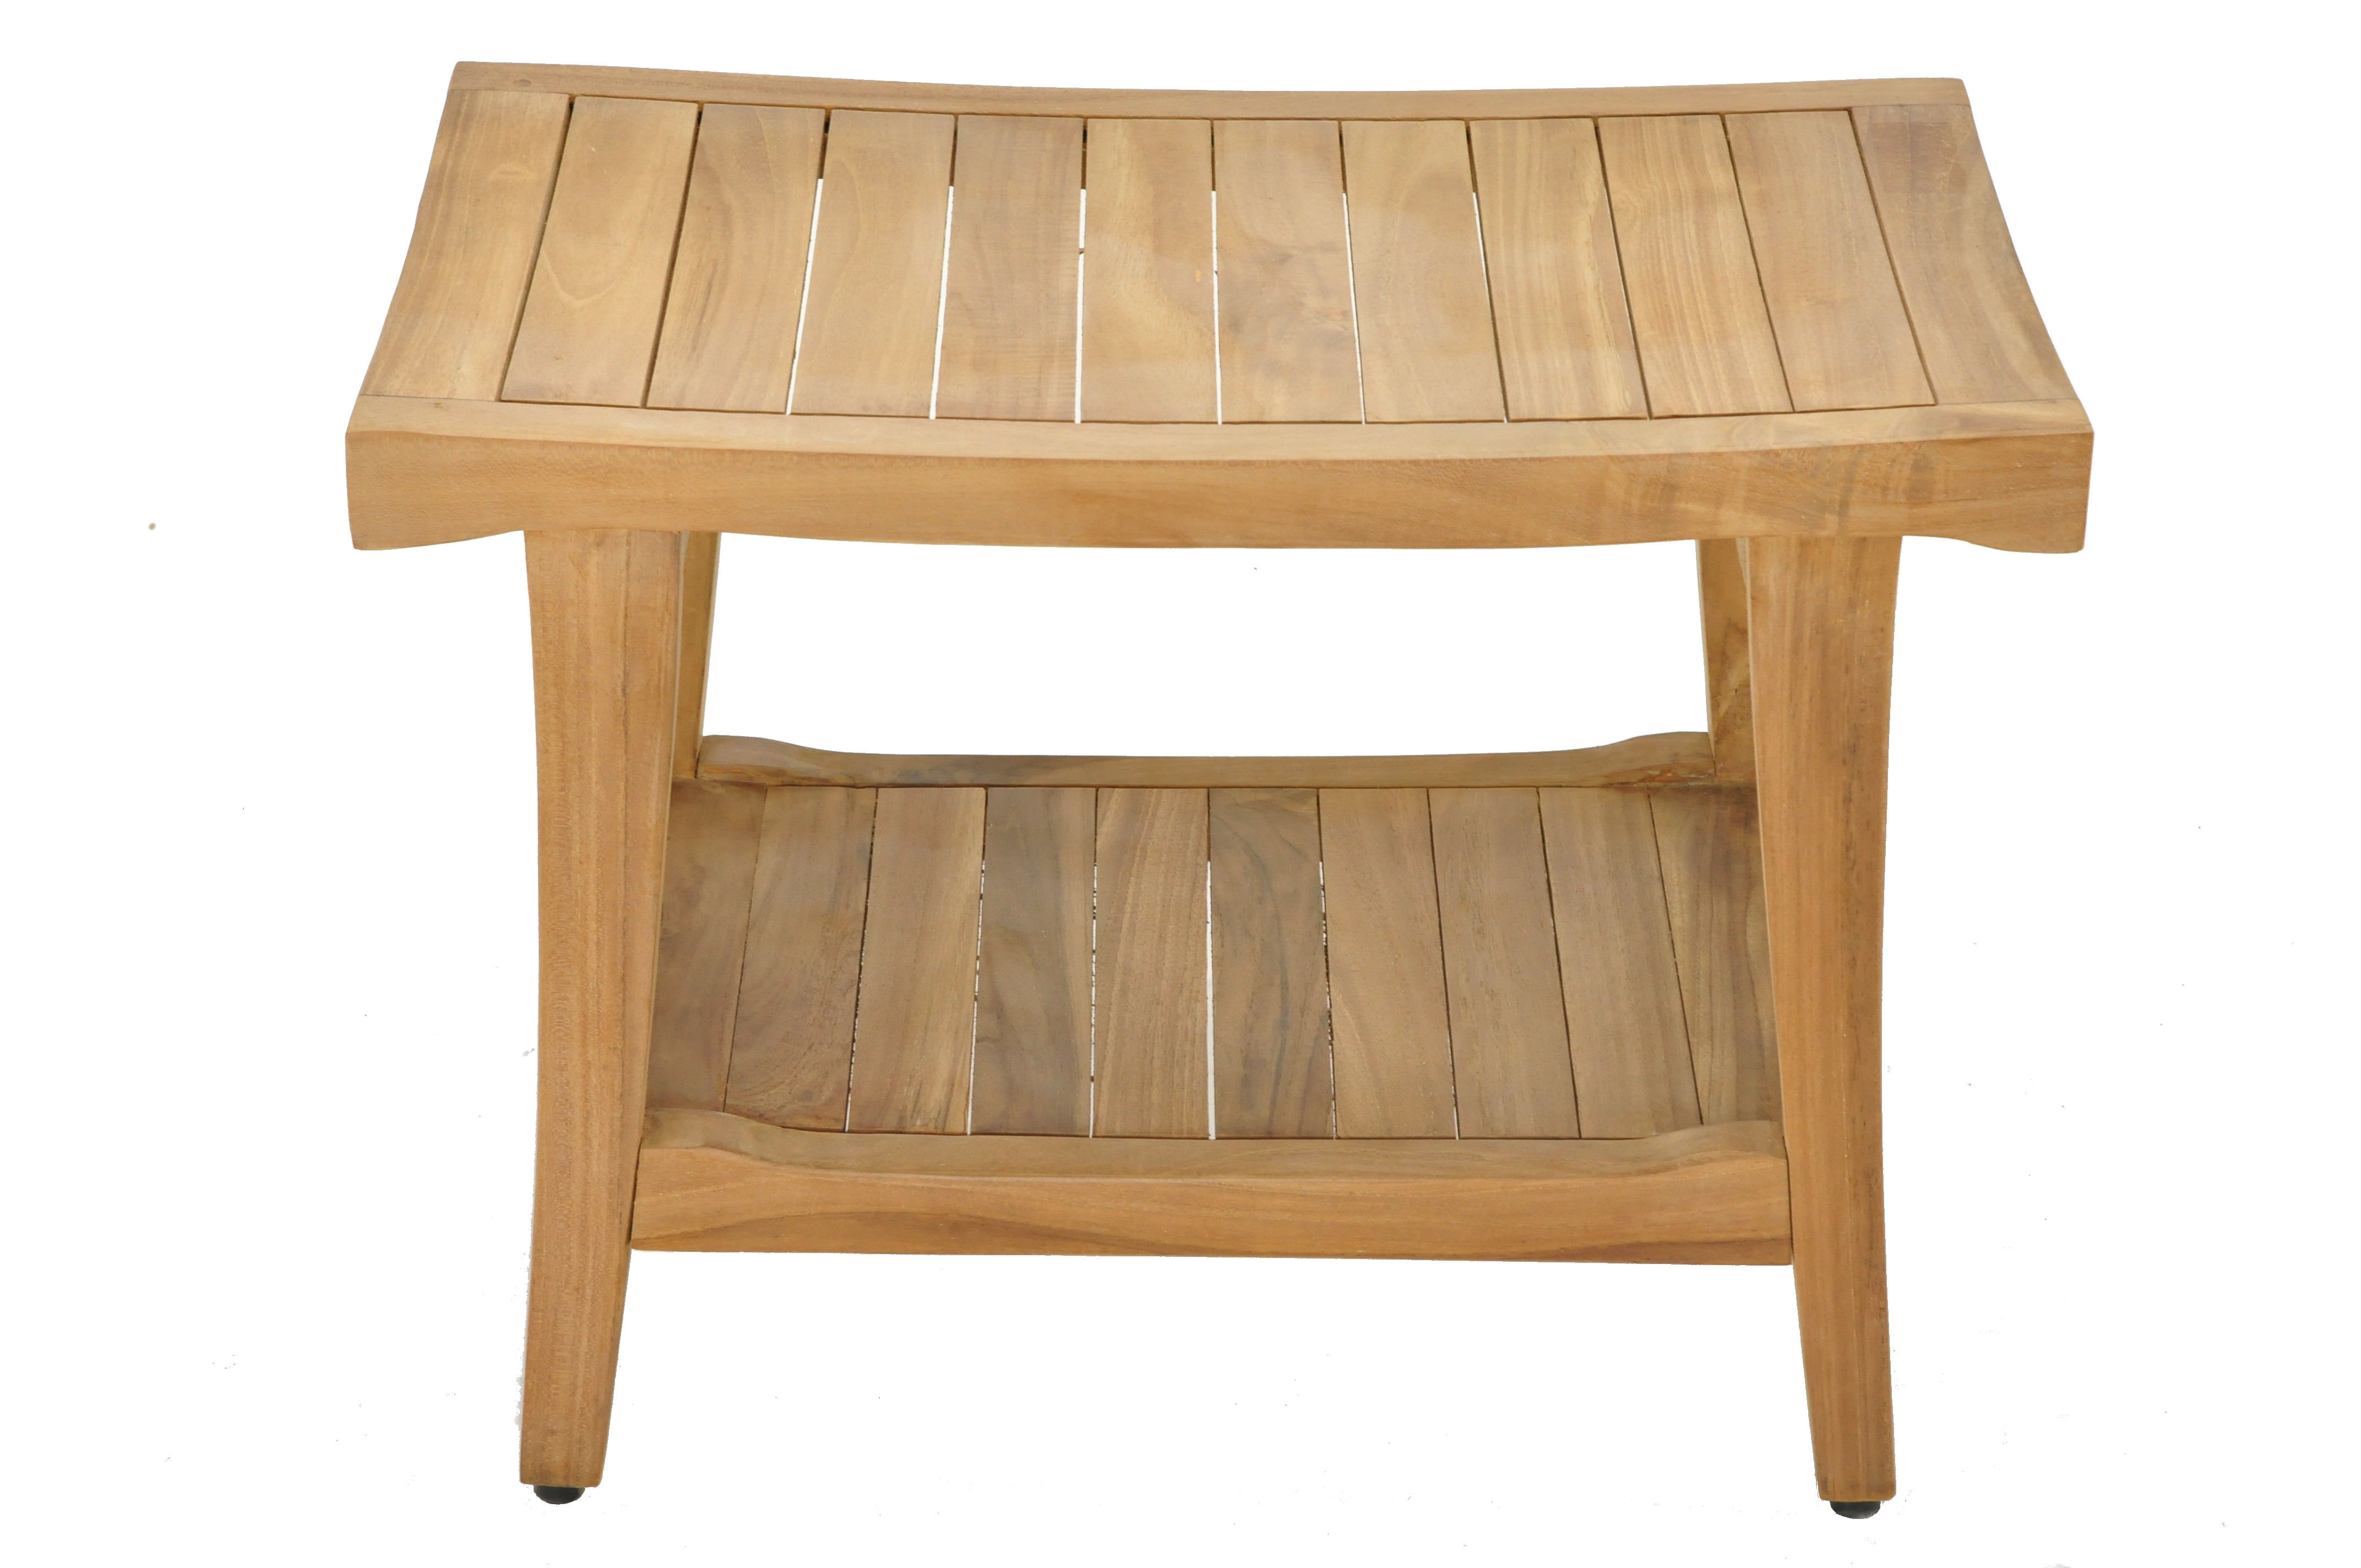 24 Quot Milan Teak Shower Bench With Shelf Teak Outdoor